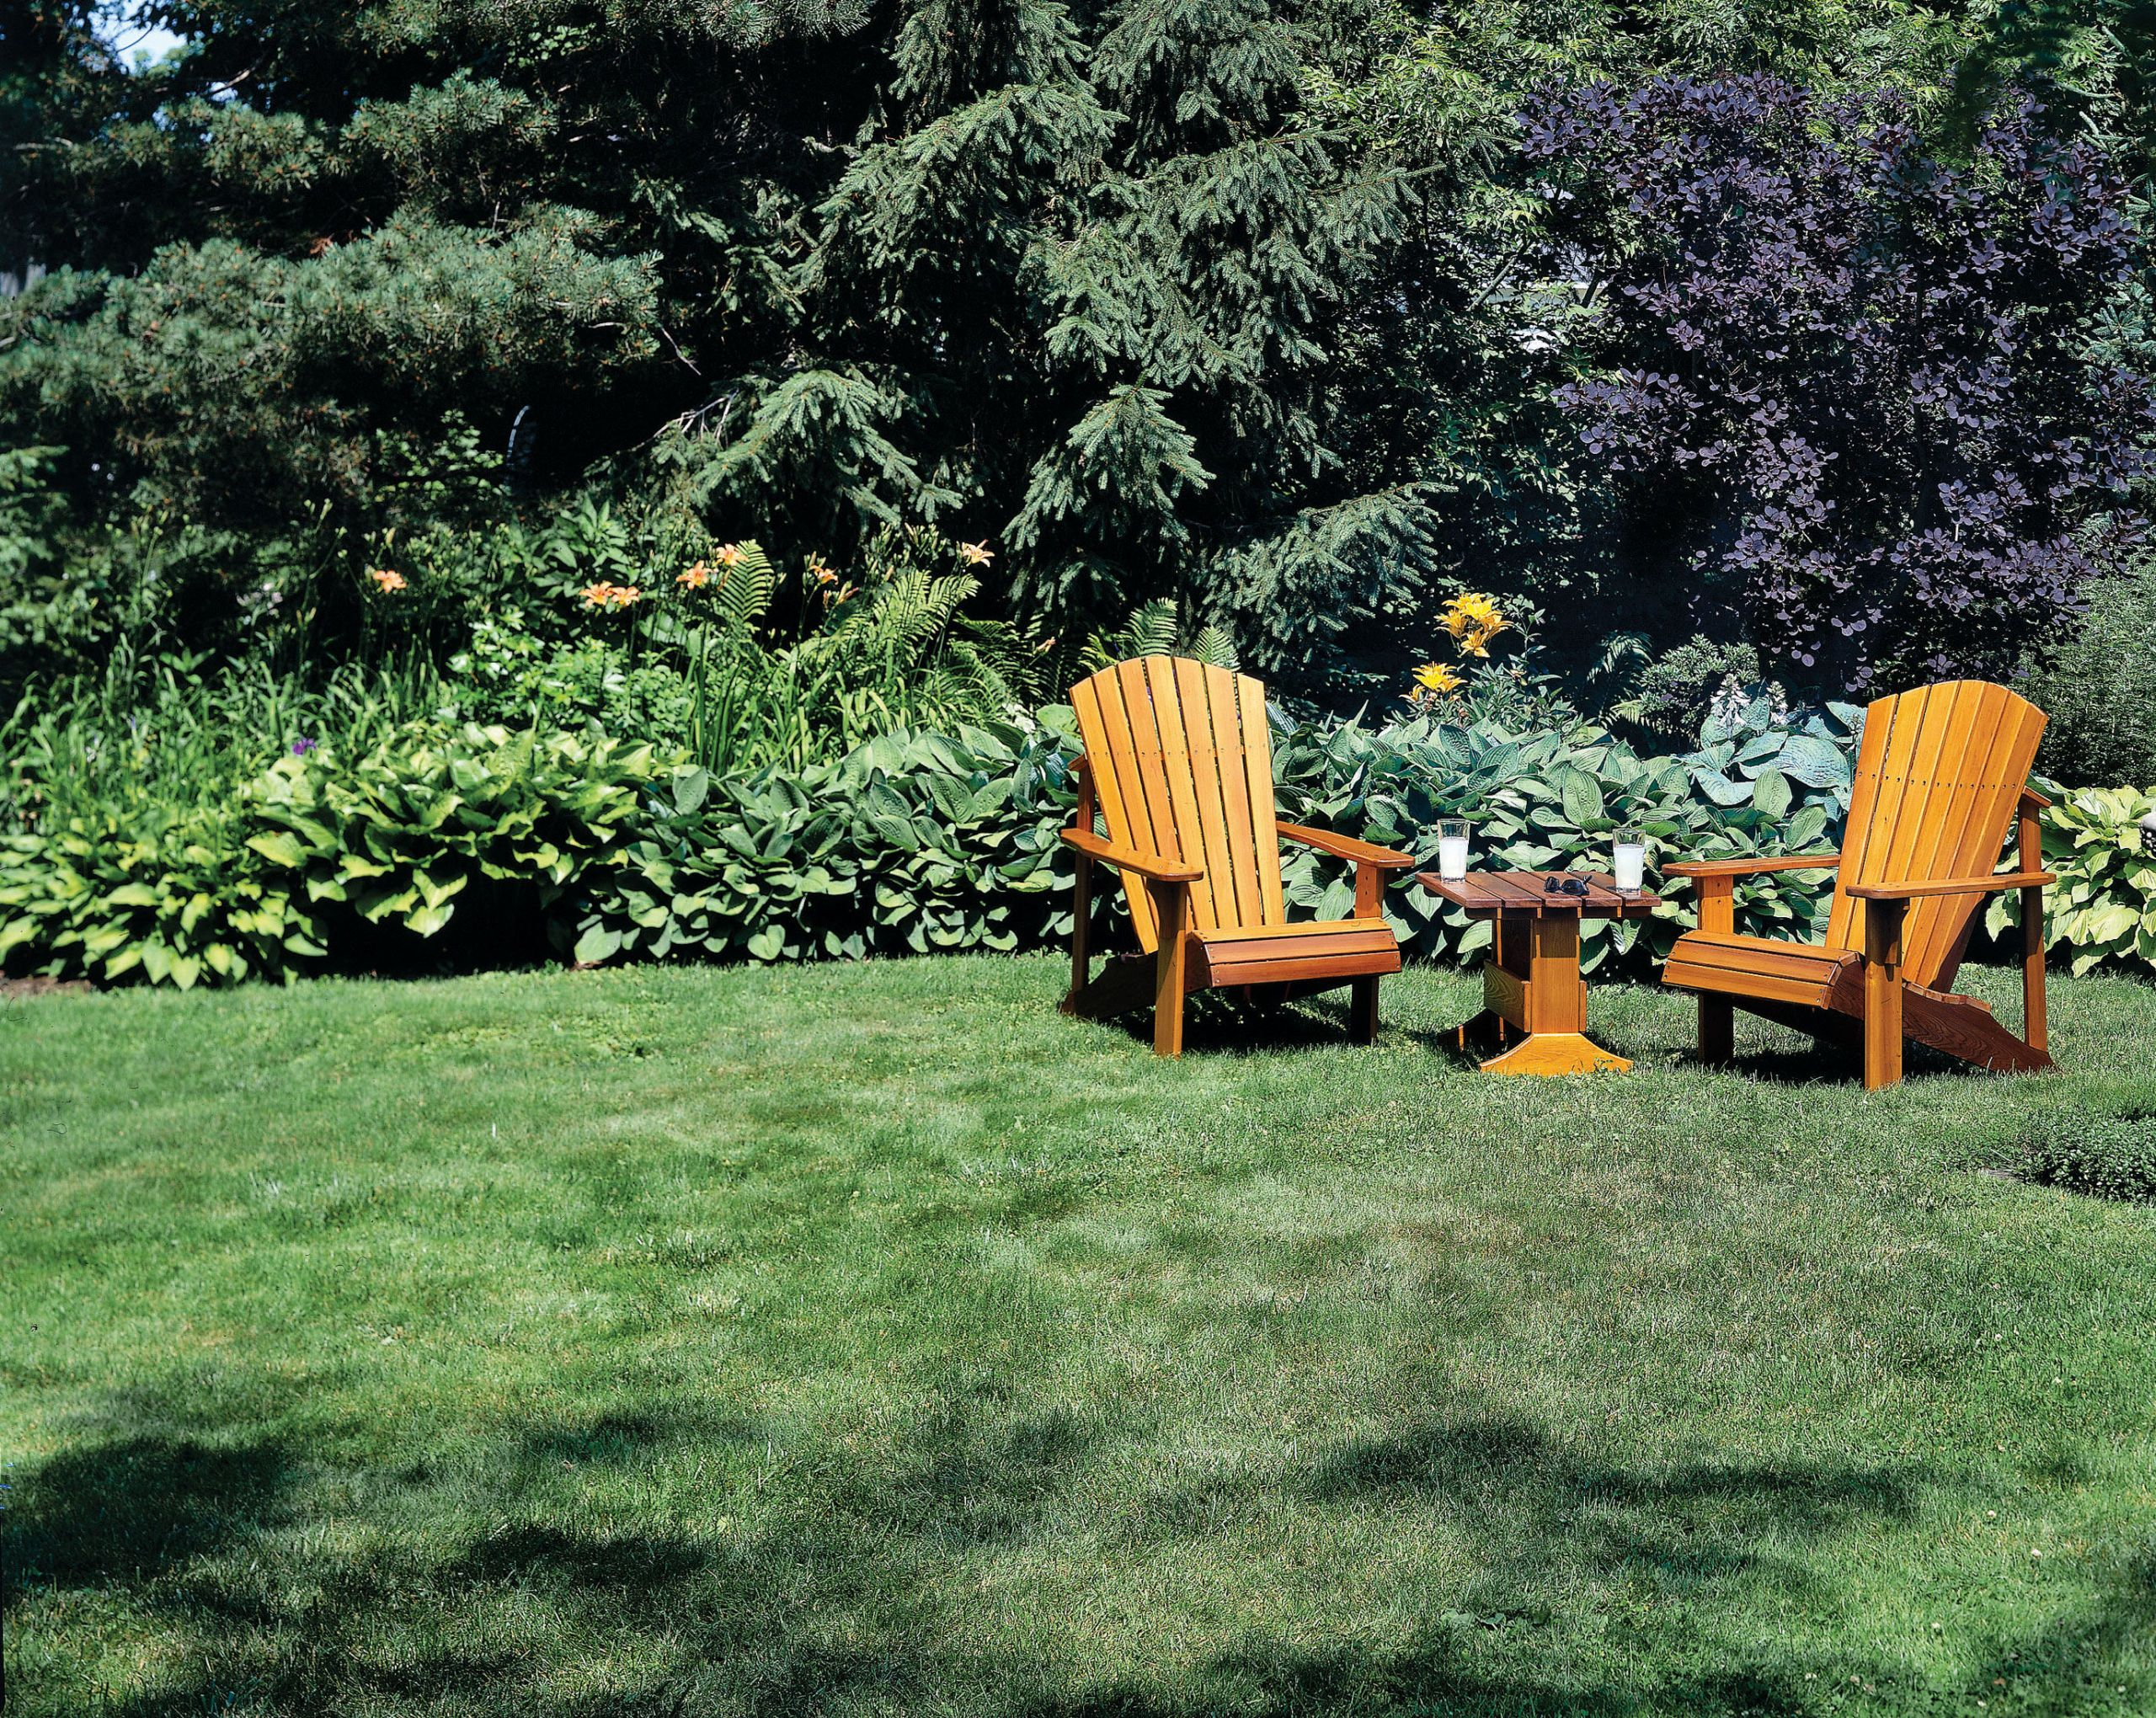 How to Build an Adirondack Chair and Table & Easy Adirondack Chair Plans - How to Build Adirondack Chairs u0026 Tables